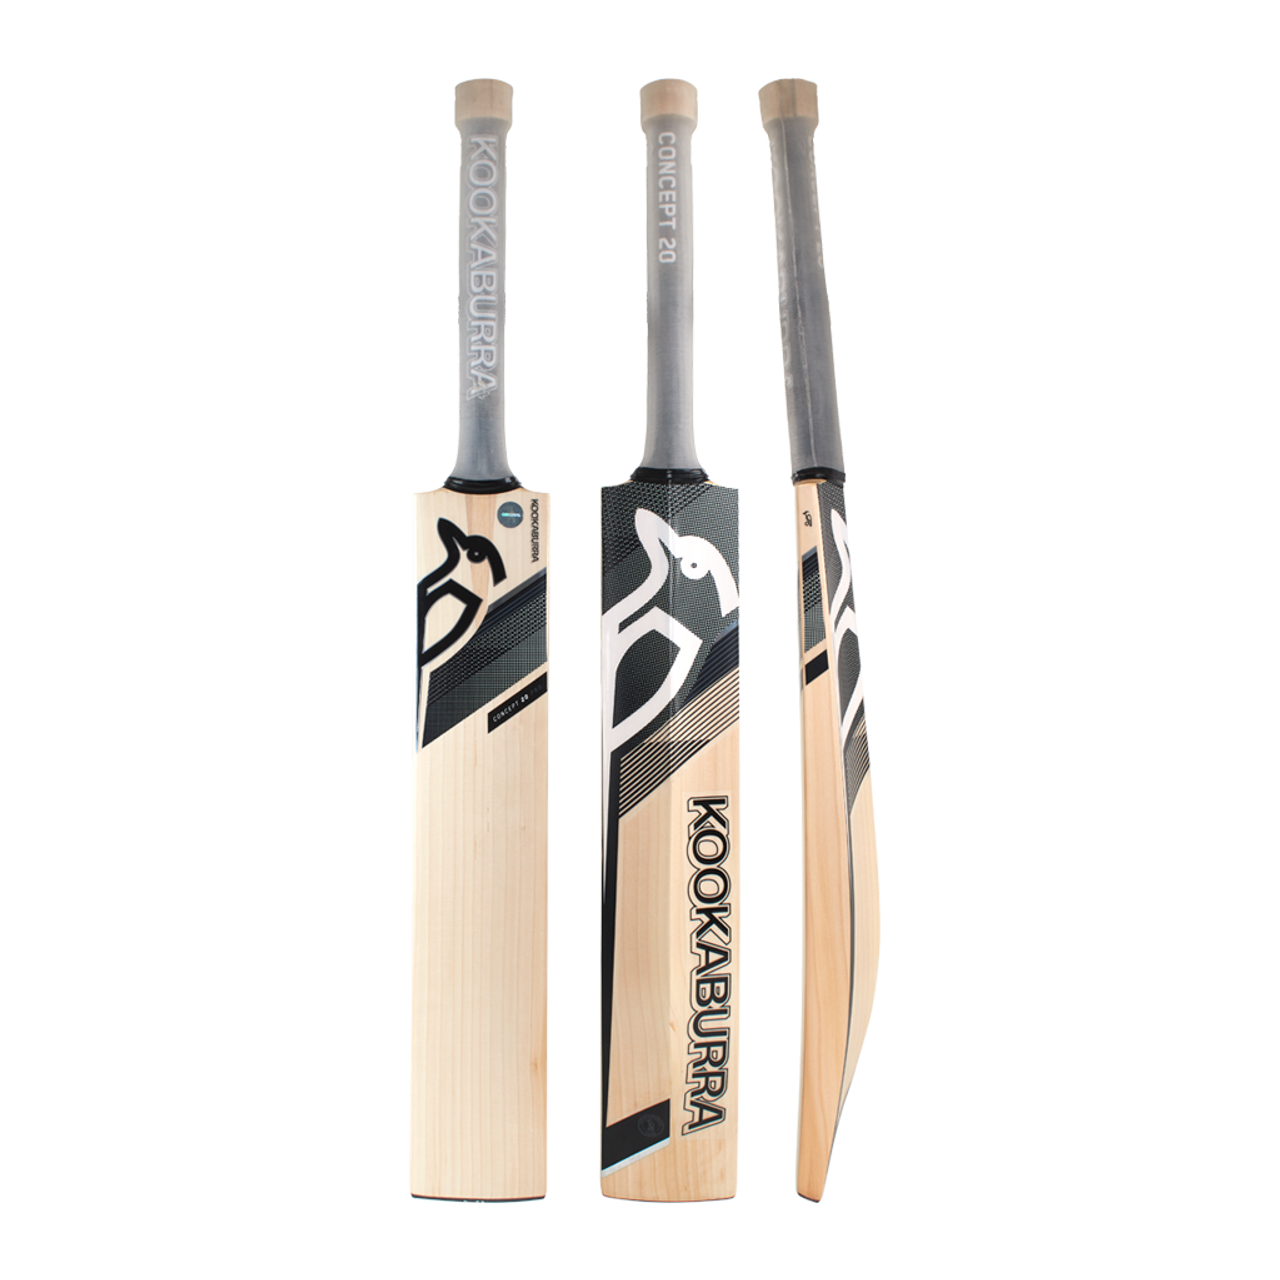 Kookaburra Concept Cricket Bat 2020